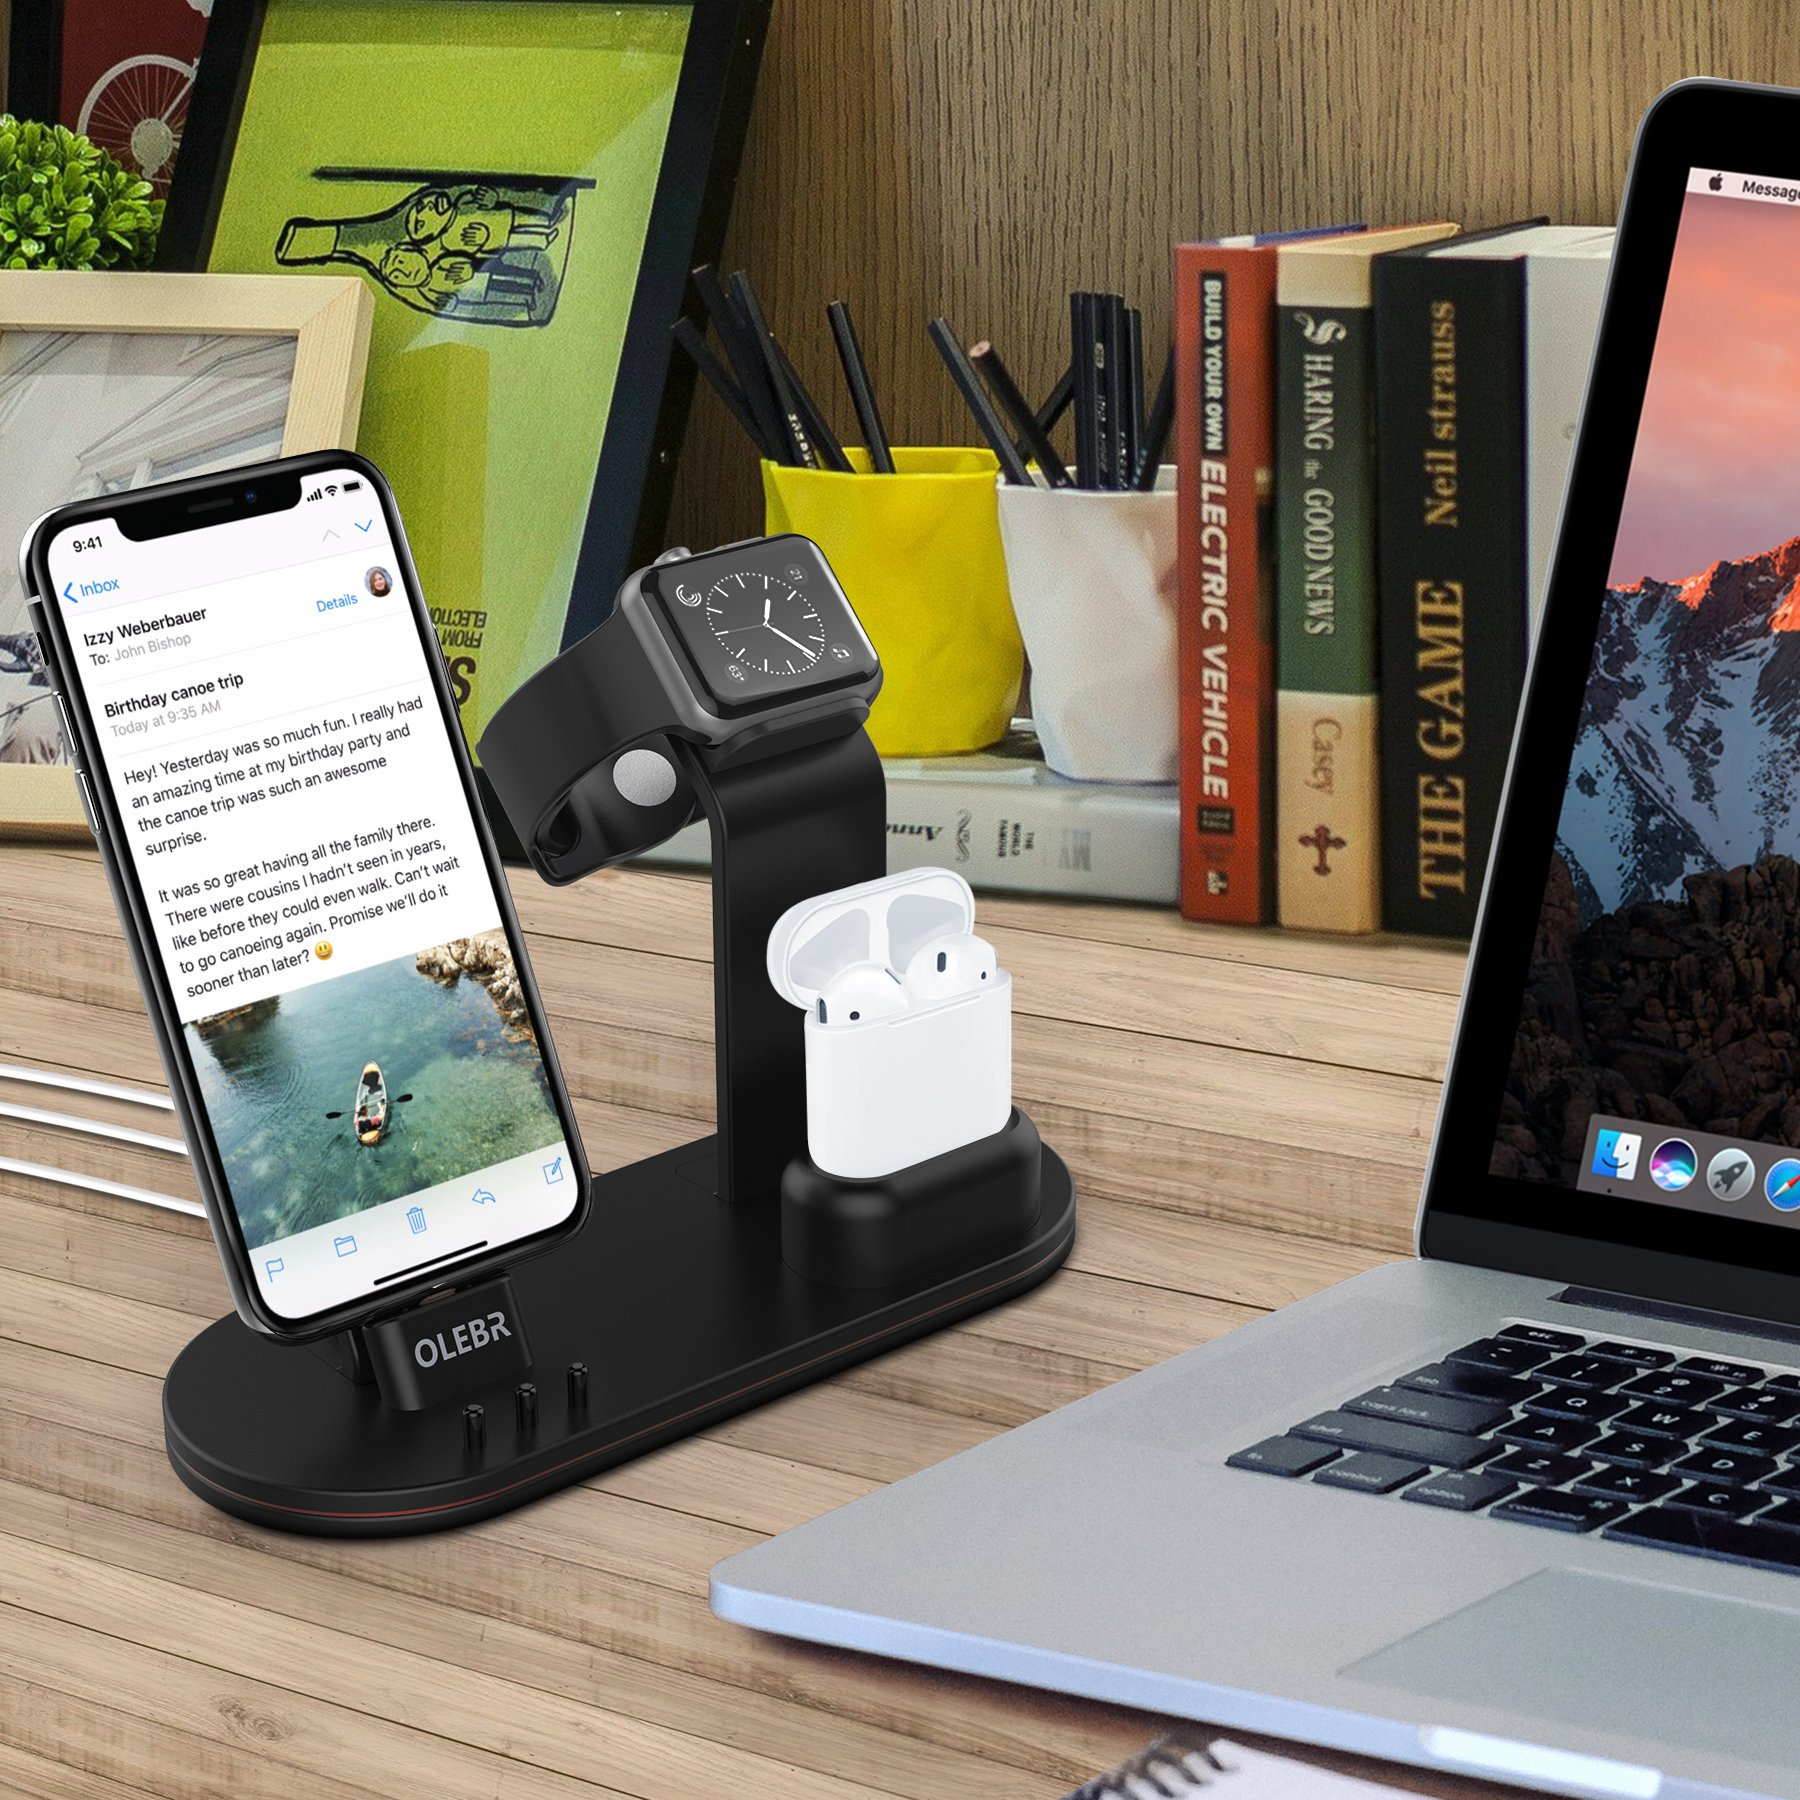 OLEBR Charging Stand for Apple Watch Aluminum Watch Charging Stand for AirPods, Apple Watch, Apple Watch Series 3/2/1/ AirPods/iPhone X/8/8Plus/7/7 Plus /6S /6S Plus/iPad by OLEBR (Image #2)